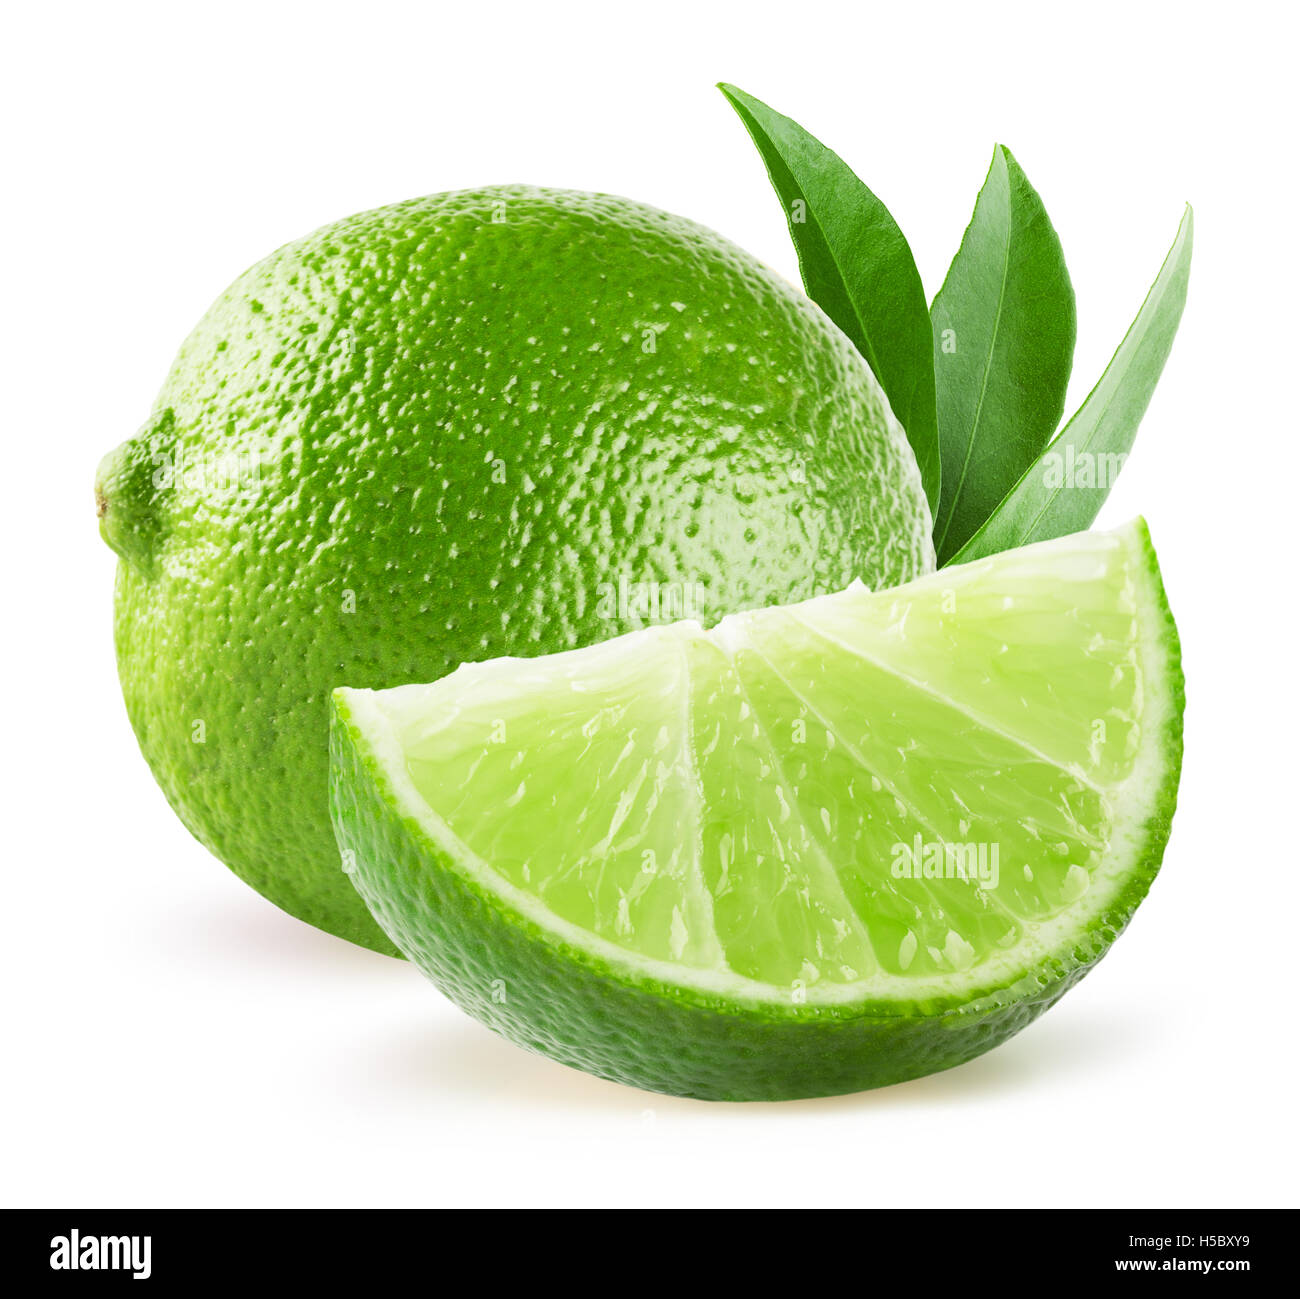 limes isolated on the white background. - Stock Image